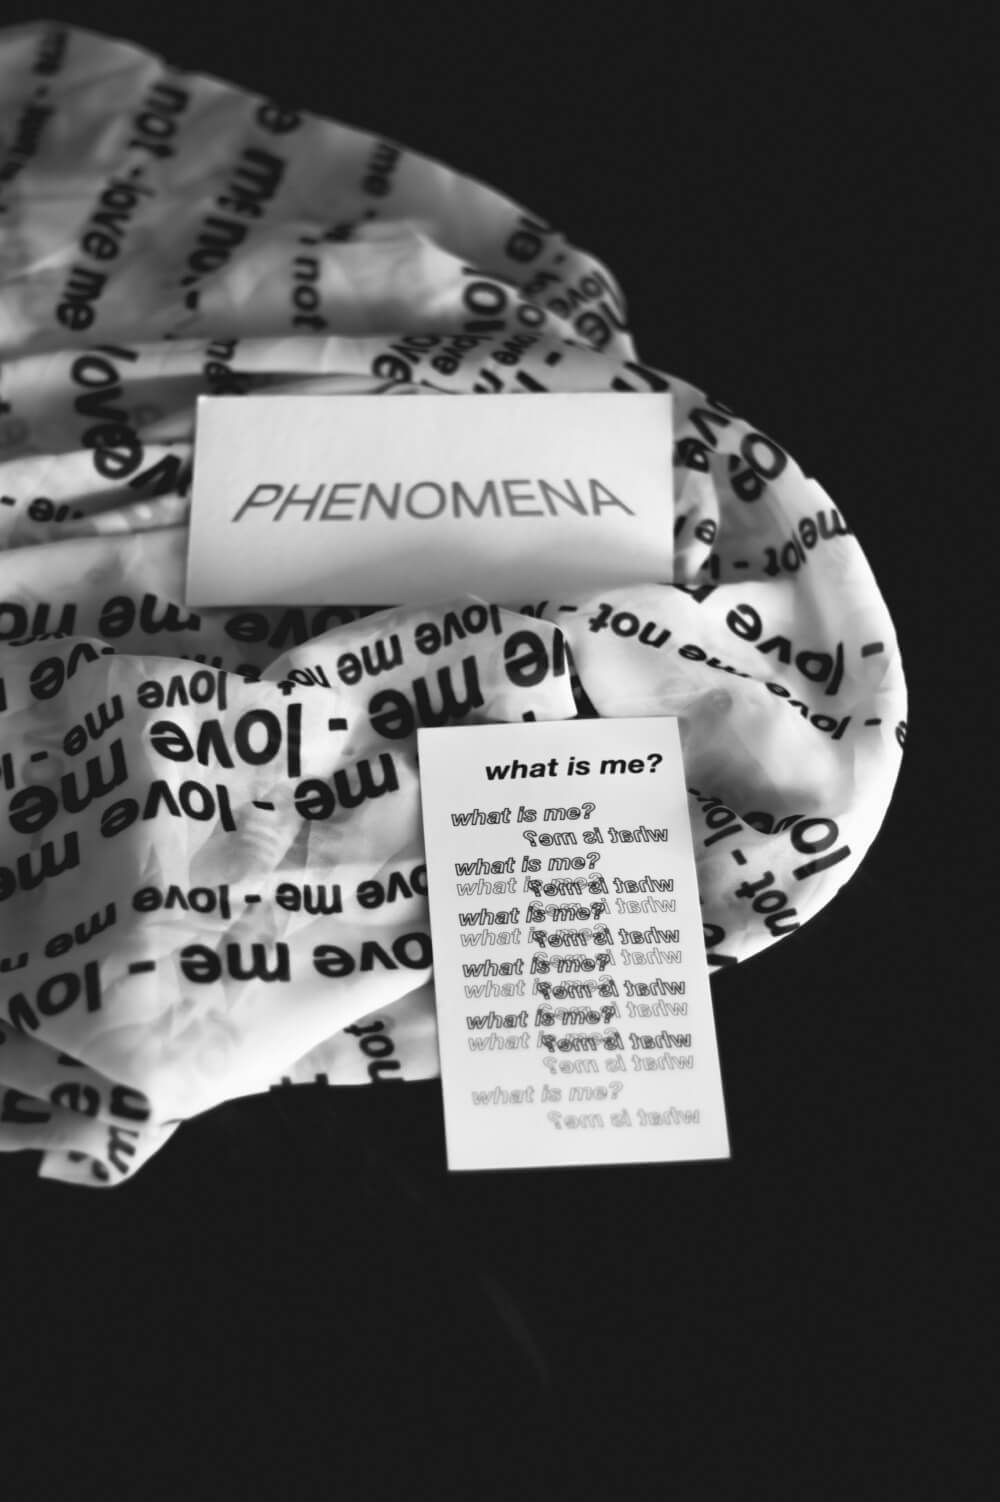 Phenomena label card